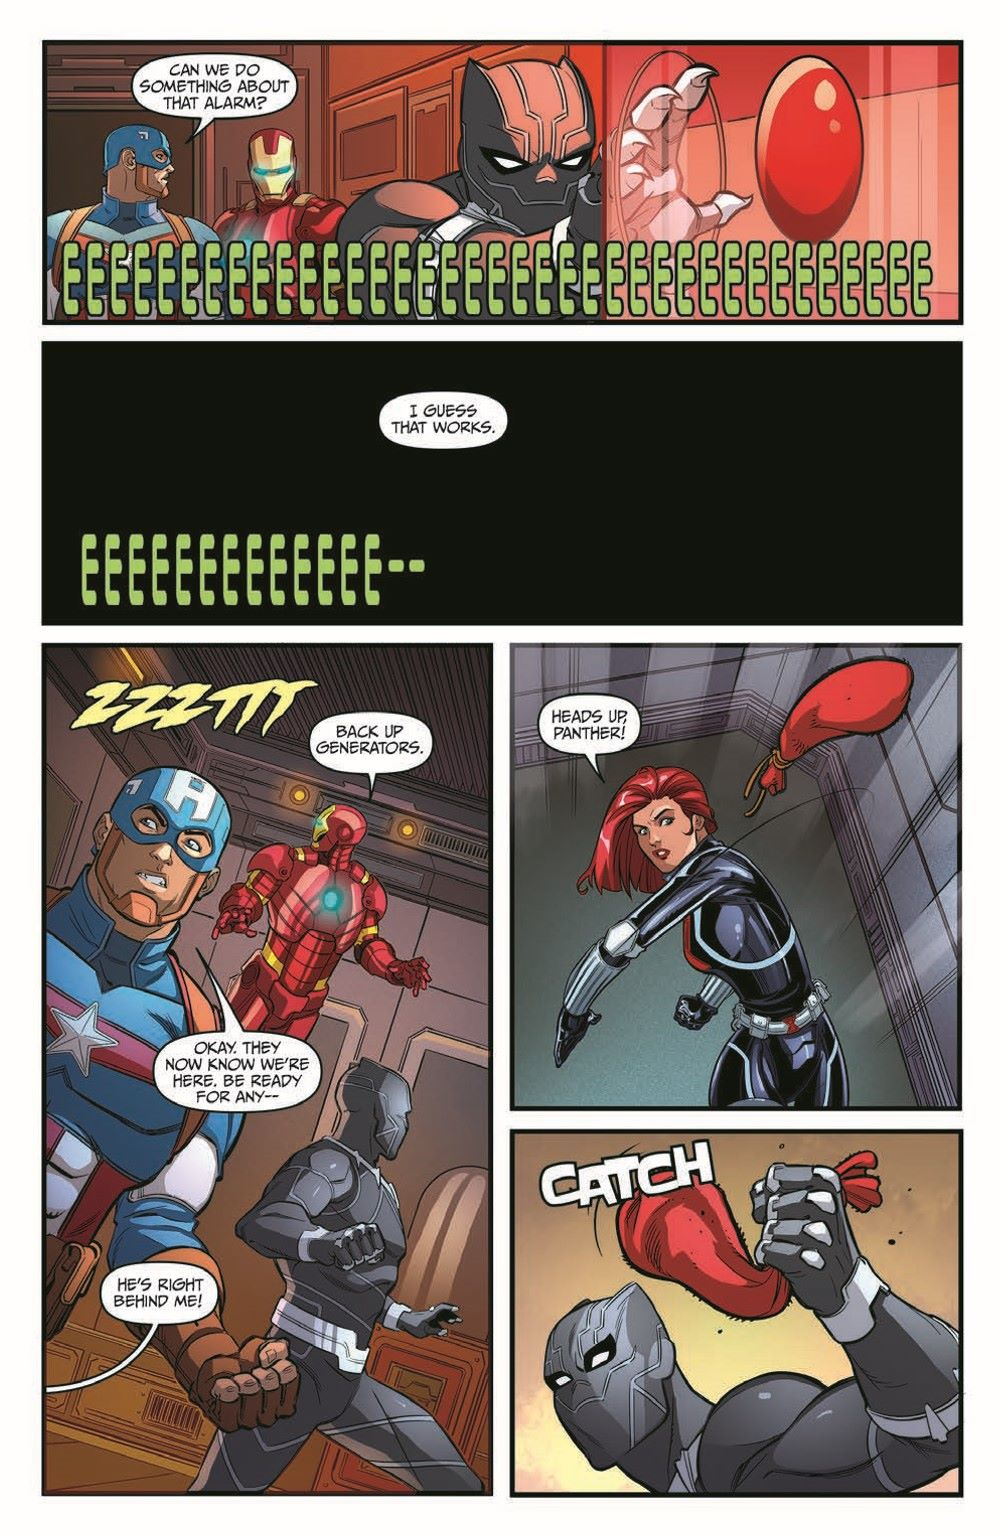 Marvel_Avengers_12_pr-6 ComicList Previews: MARVEL ACTION AVENGERS #12